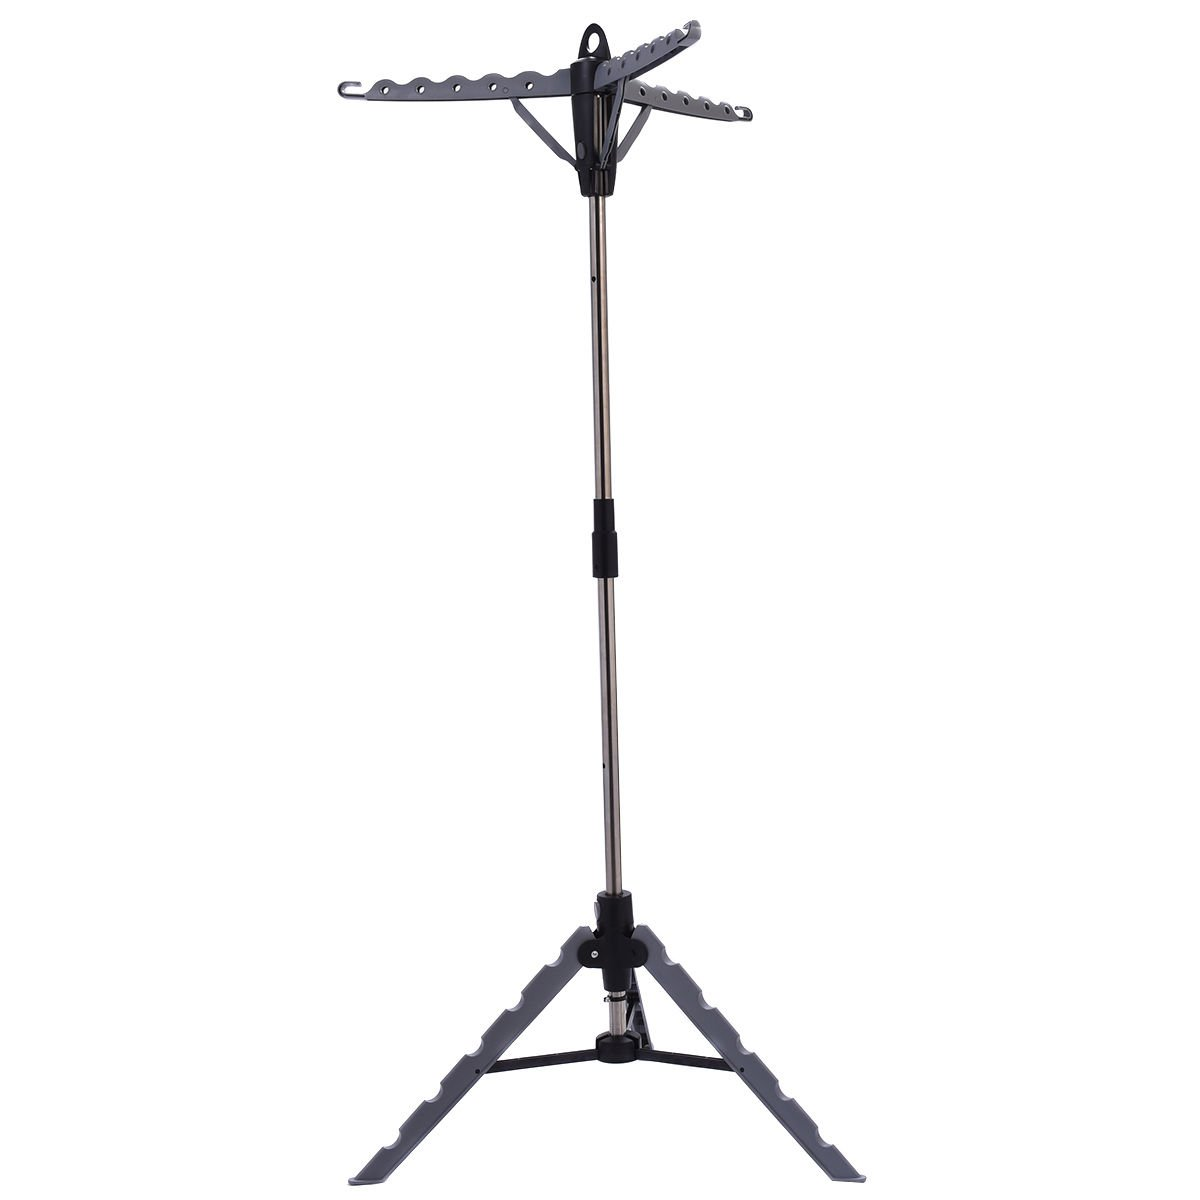 Clothes Hanger Drying Portable Multifunctional Retractable Laundry Racks Tripod by TF-Godung (Image #3)